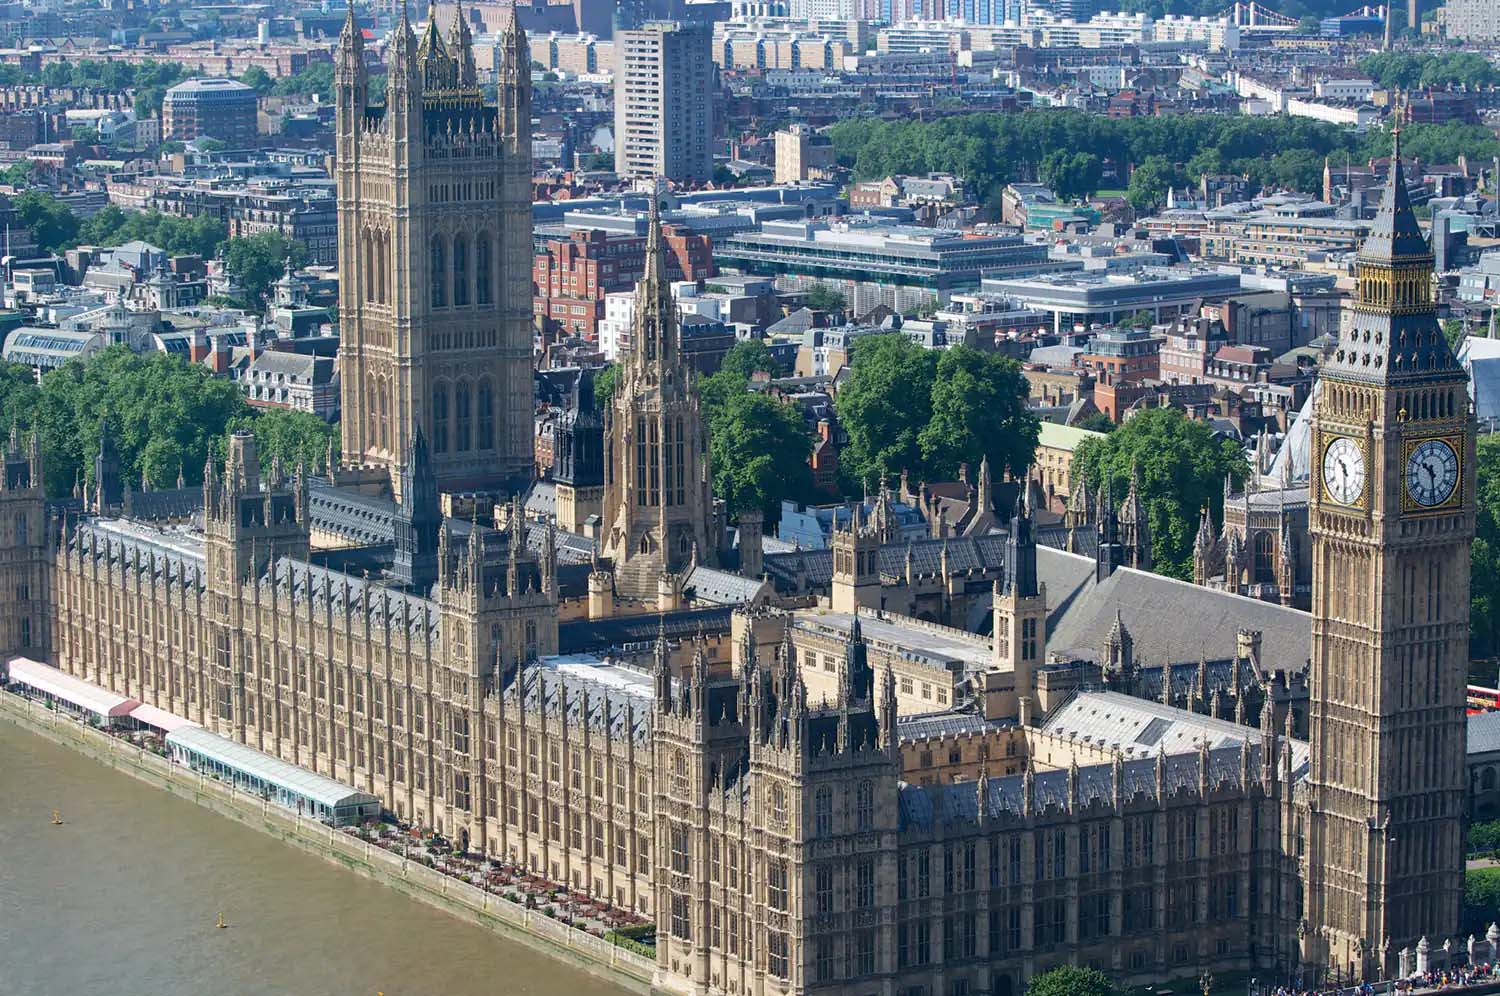 The Palace of Westminster UK Parliament | Drone Ariel View | Castria Design